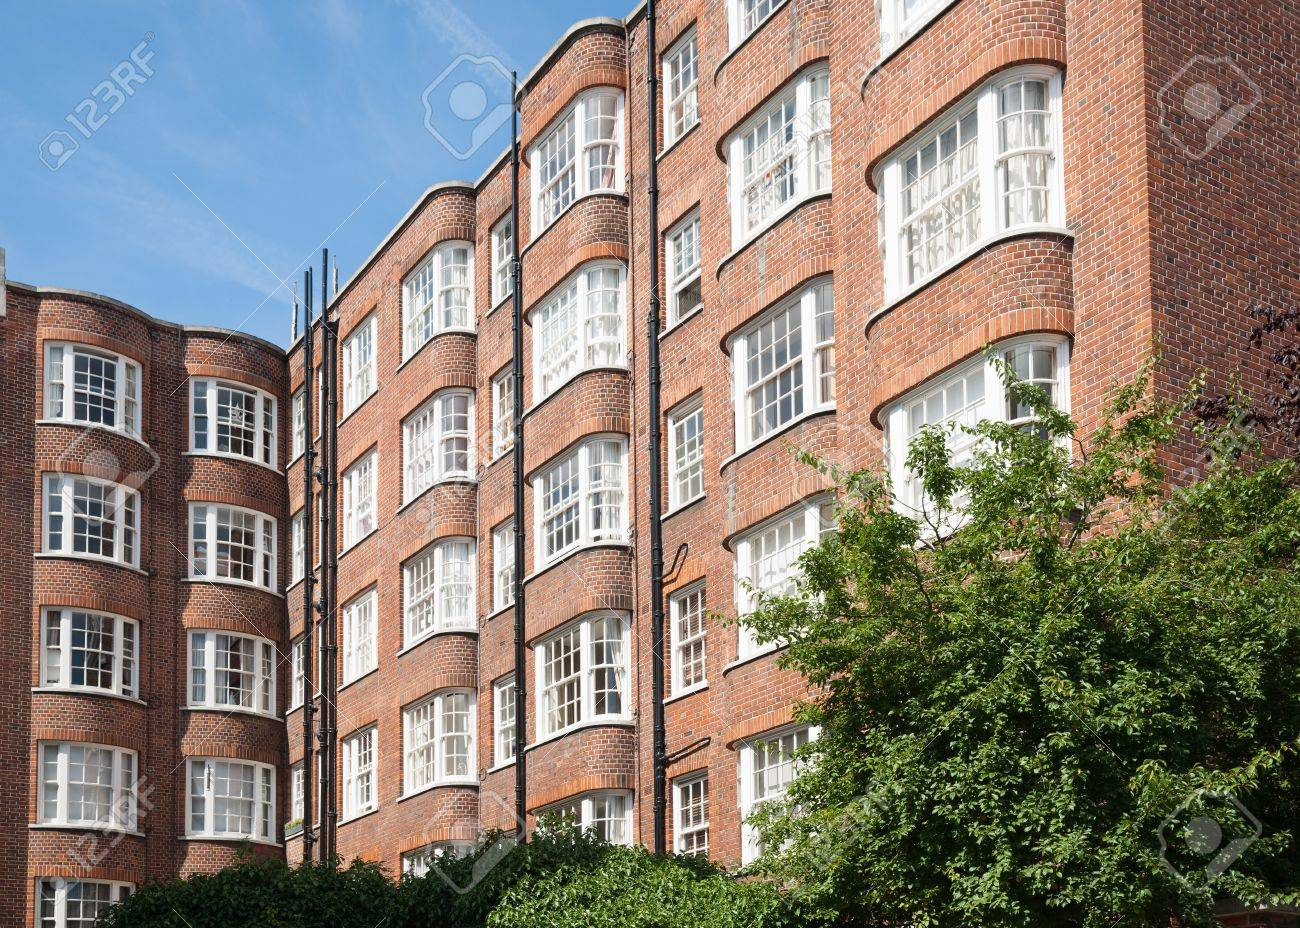 Red brick apartments, Victorian architecture